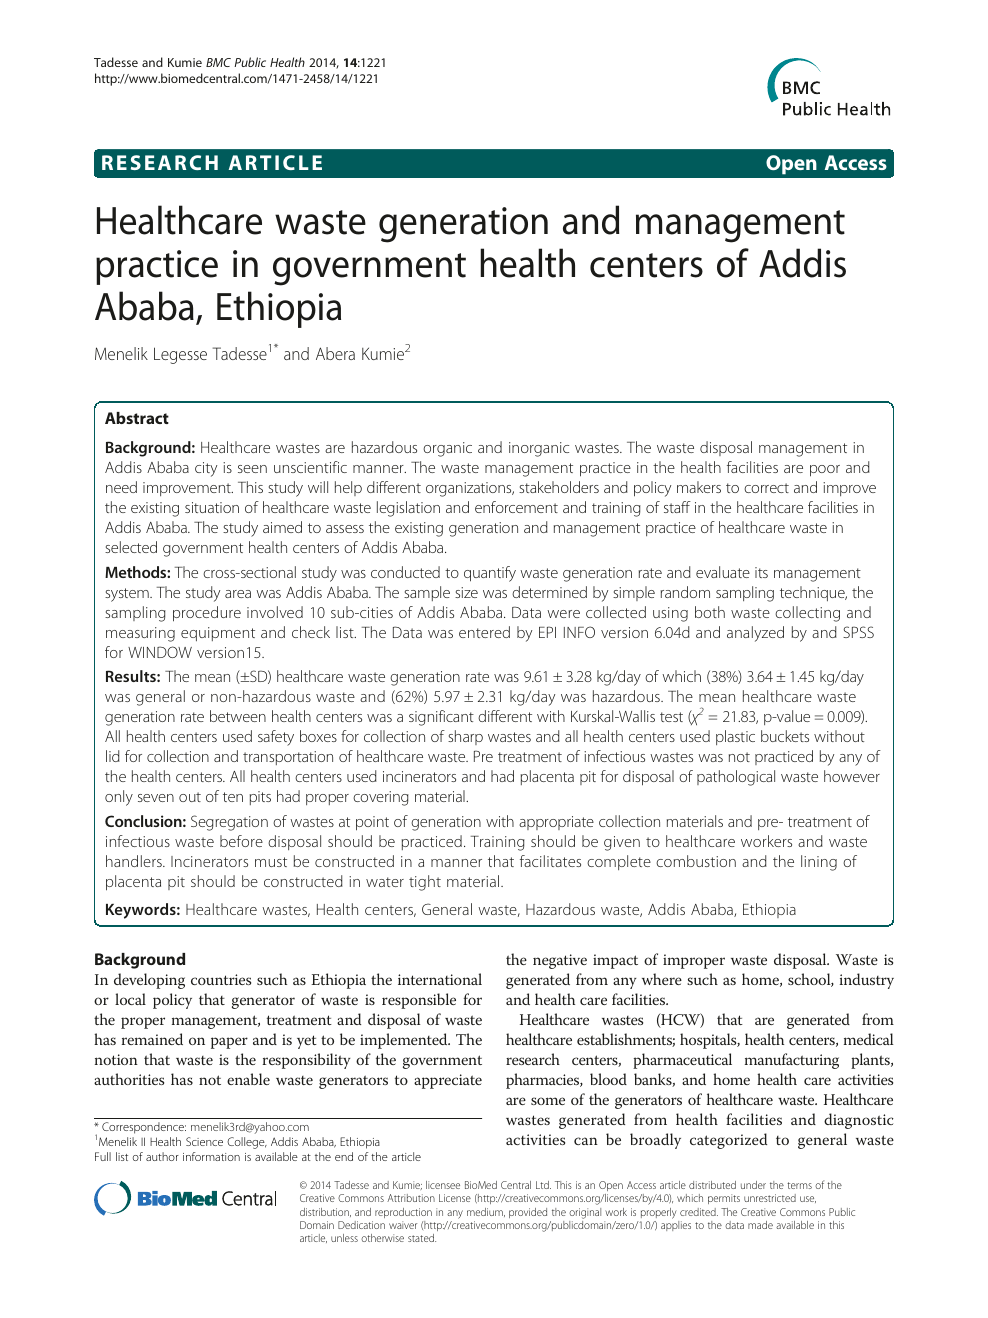 Healthcare waste generation and management practice in